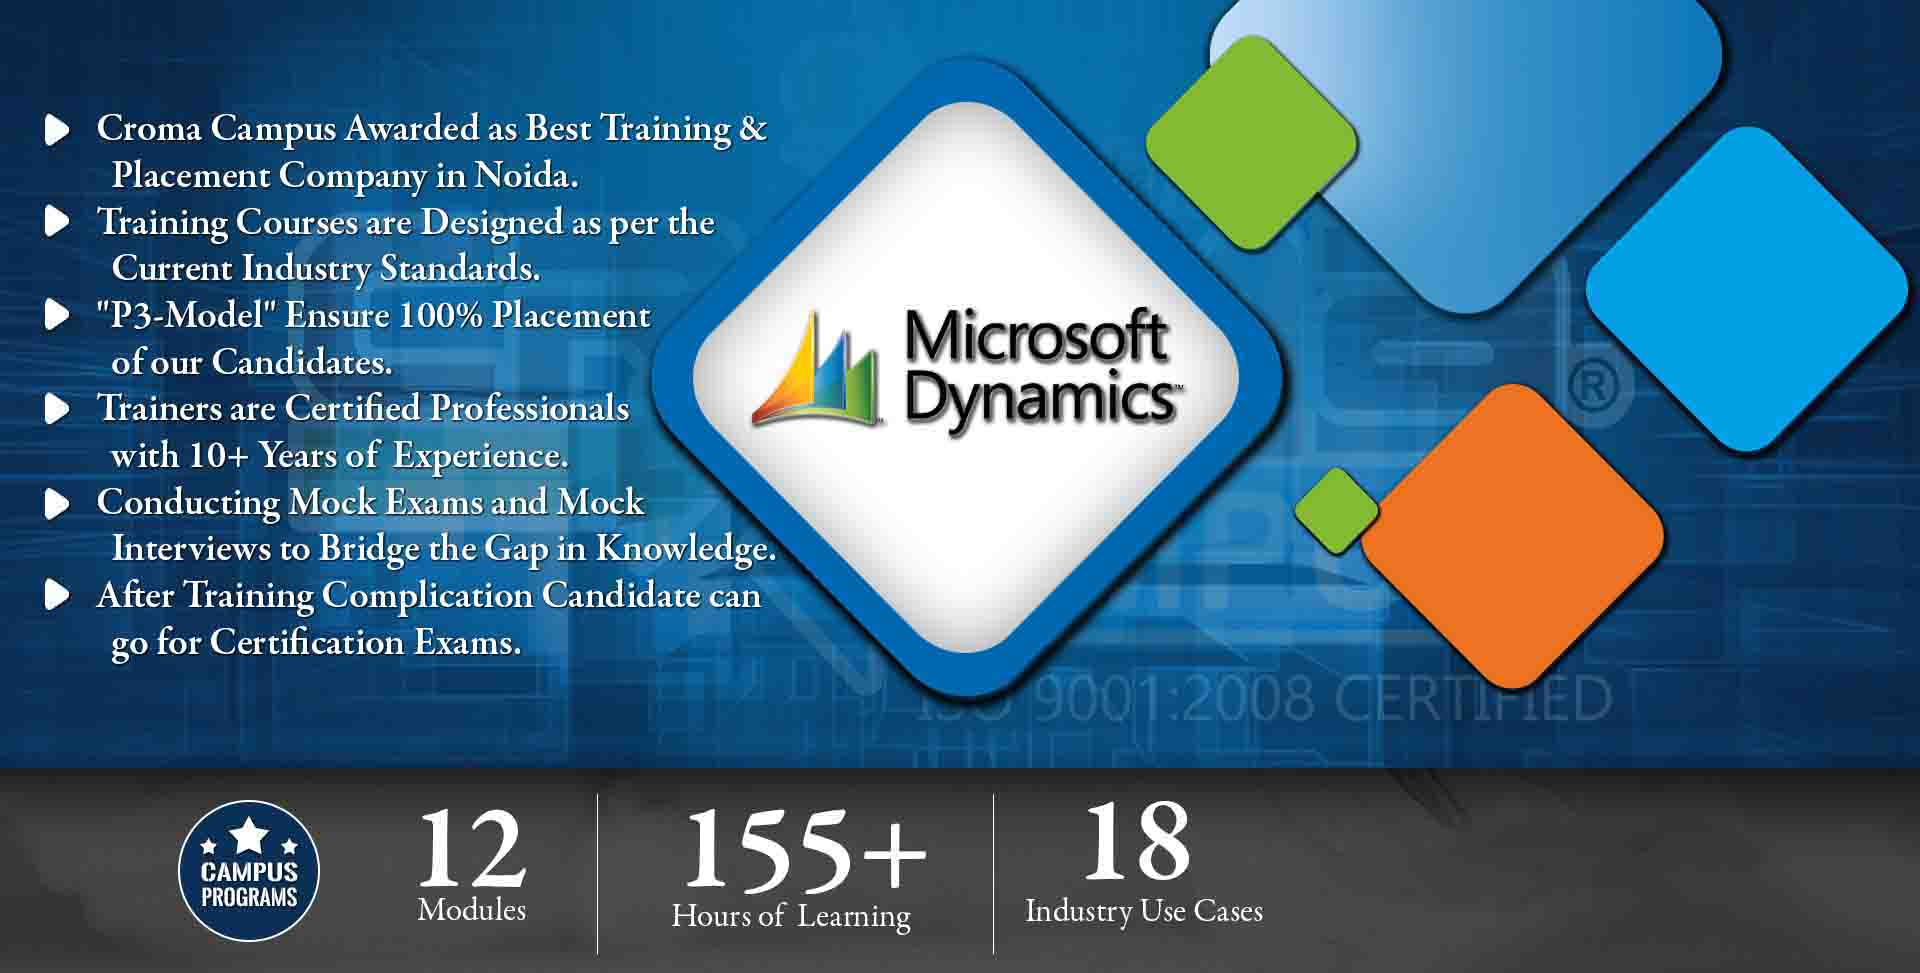 Microsoft Dynamics Training in Delhi NCR- Croma Campus